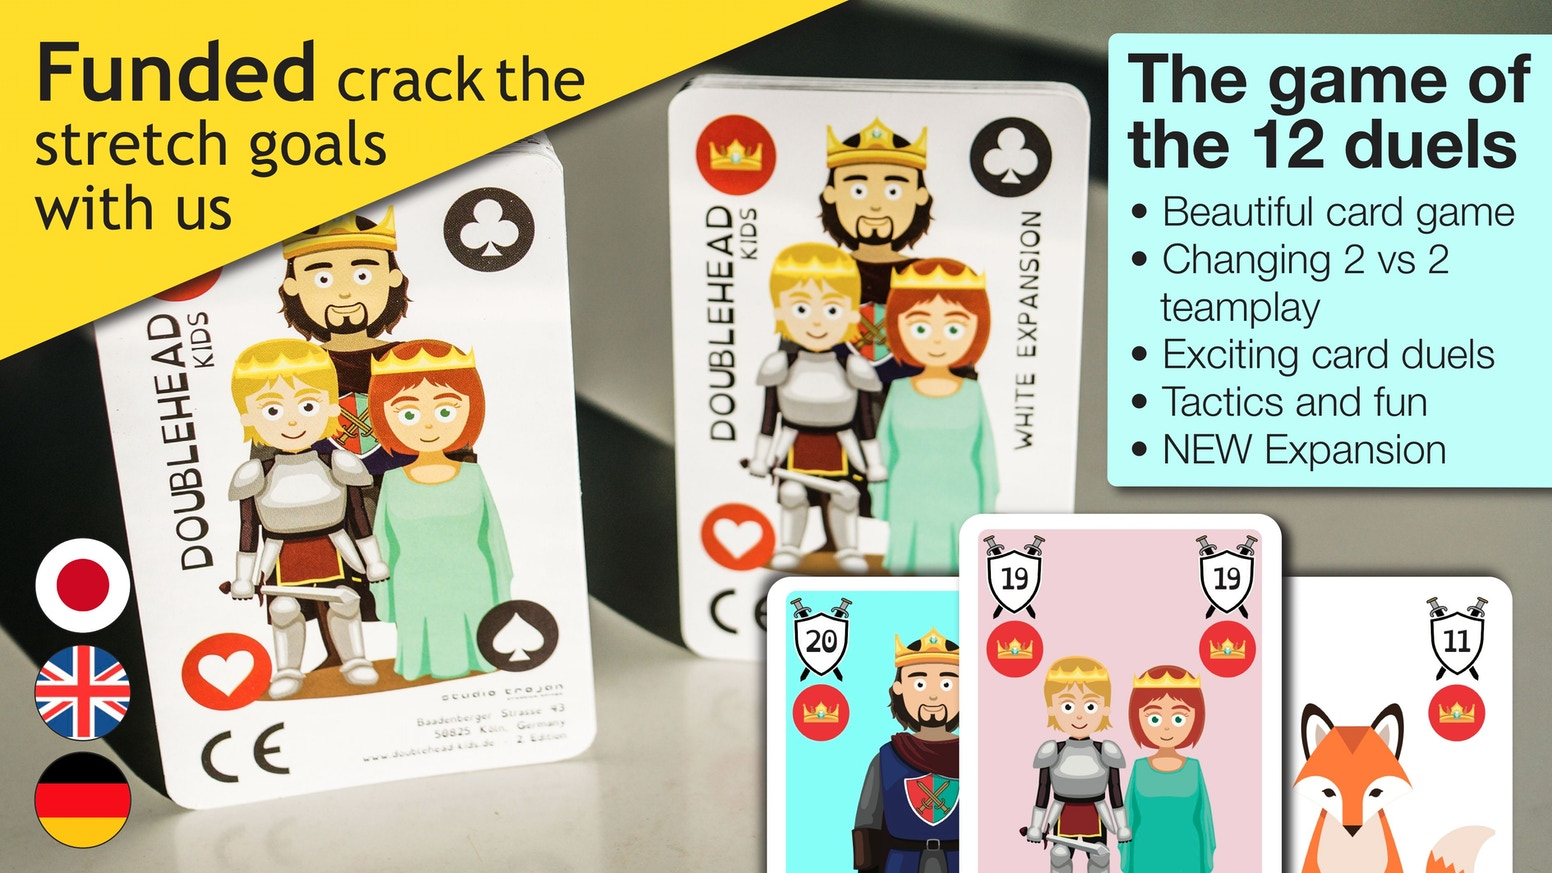 Changing 2 vs 2 teamplay - popular German trick-taking card game Doppelkopf newly interpreted in a family-friendly version